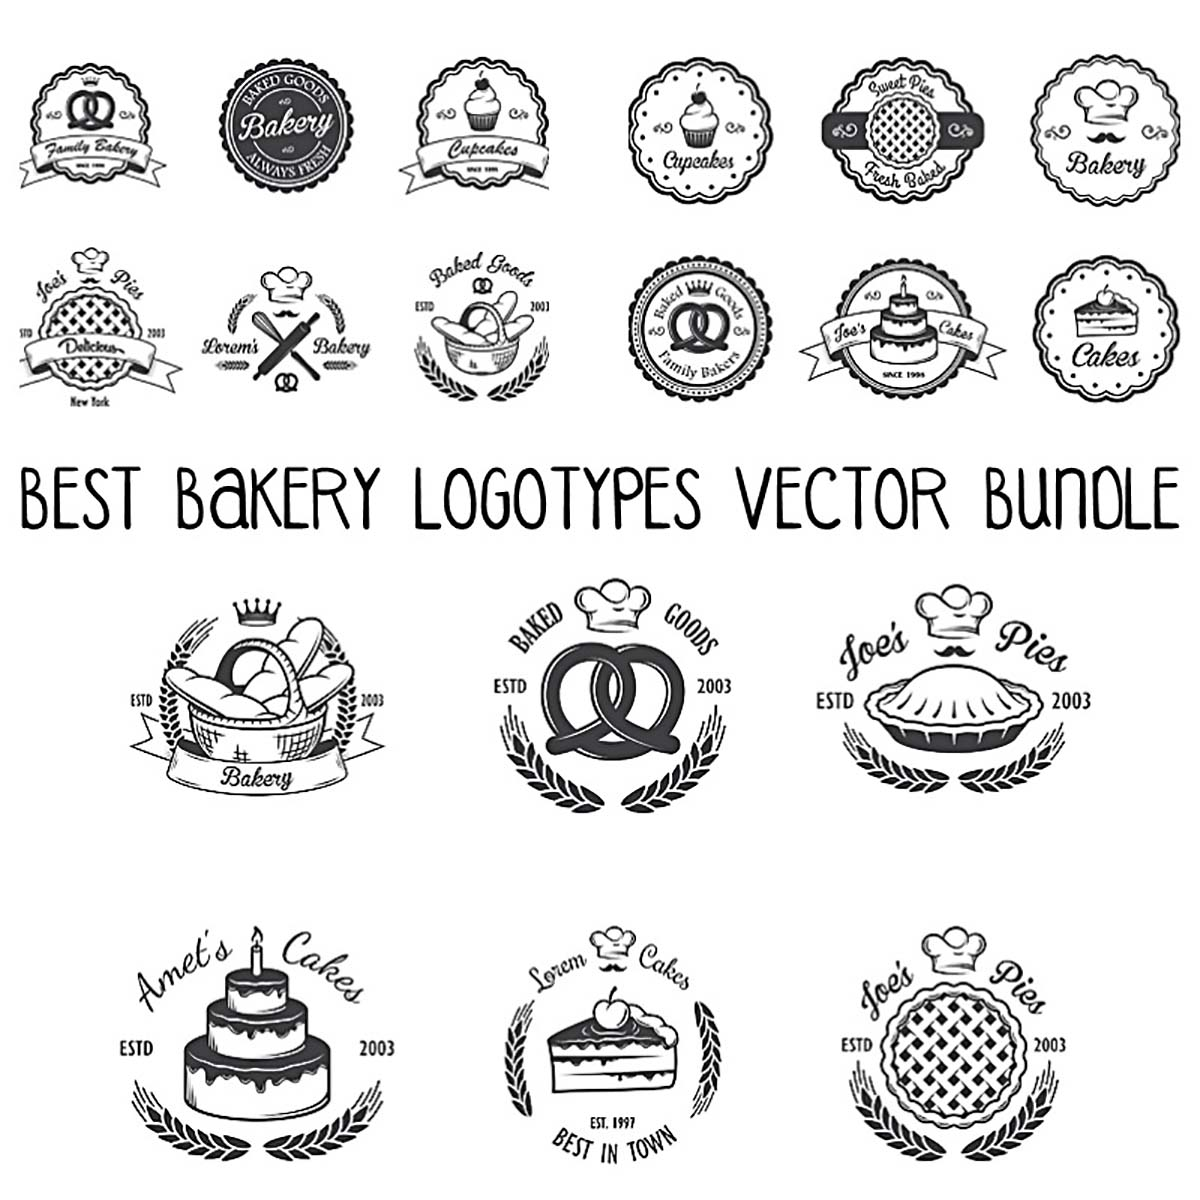 Bakery logotypes best vector bundle